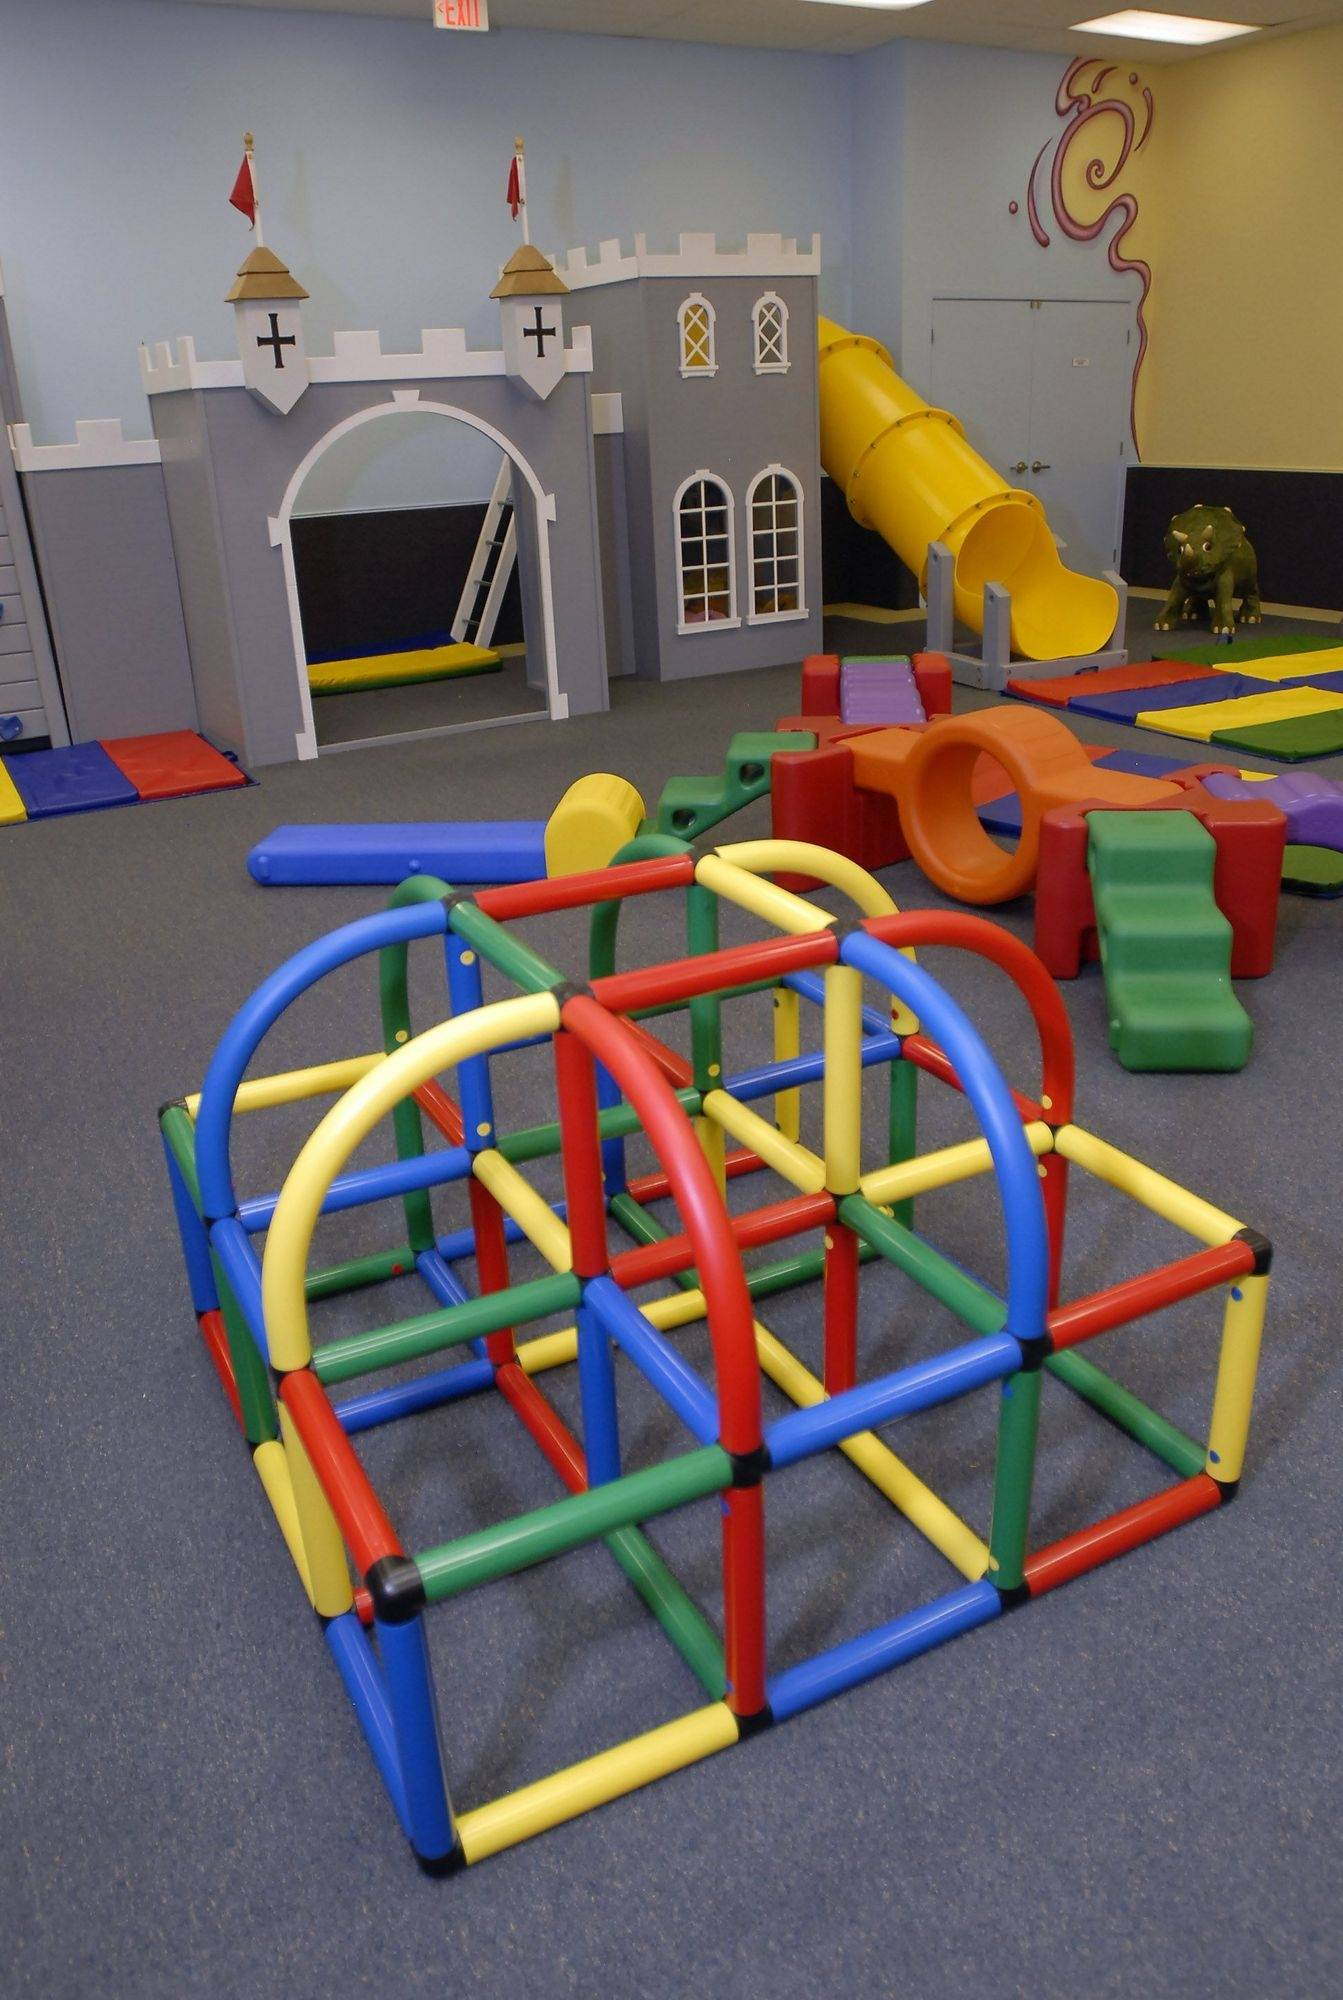 Large play rooms geared to promote learning are a feature at the new Kids and Company preschool and party facility in Buffalo Grove.